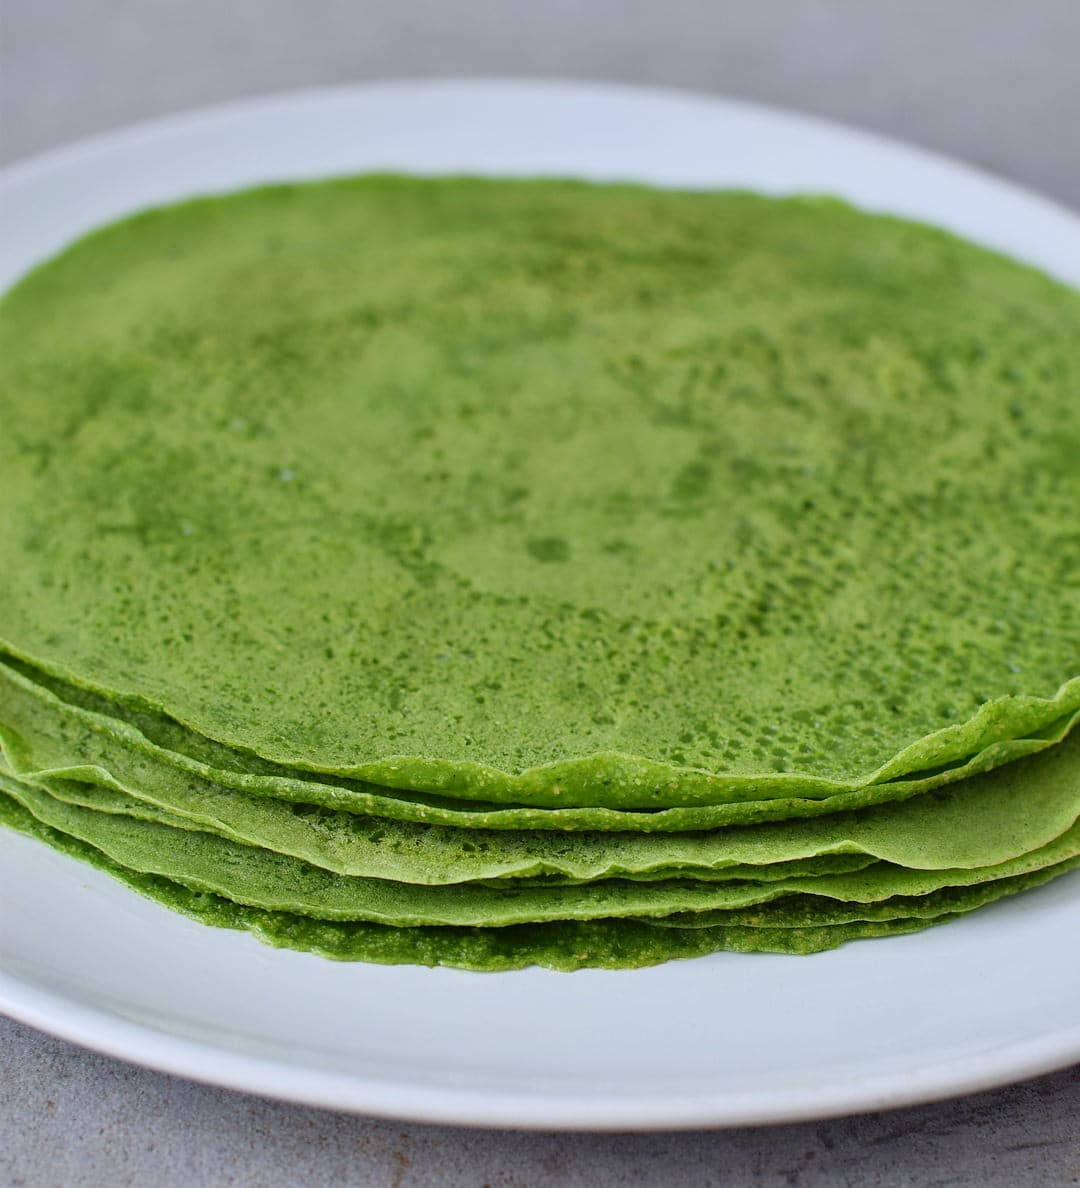 Homemade green spinach tortillas with 3 ingredients. The recipe is healthy, gluten-free, vegan, wheat-free, corn-free, great for kids, and easy to make. Perfect for wraps, tacos, burritos, enchiladas, quesadillas.